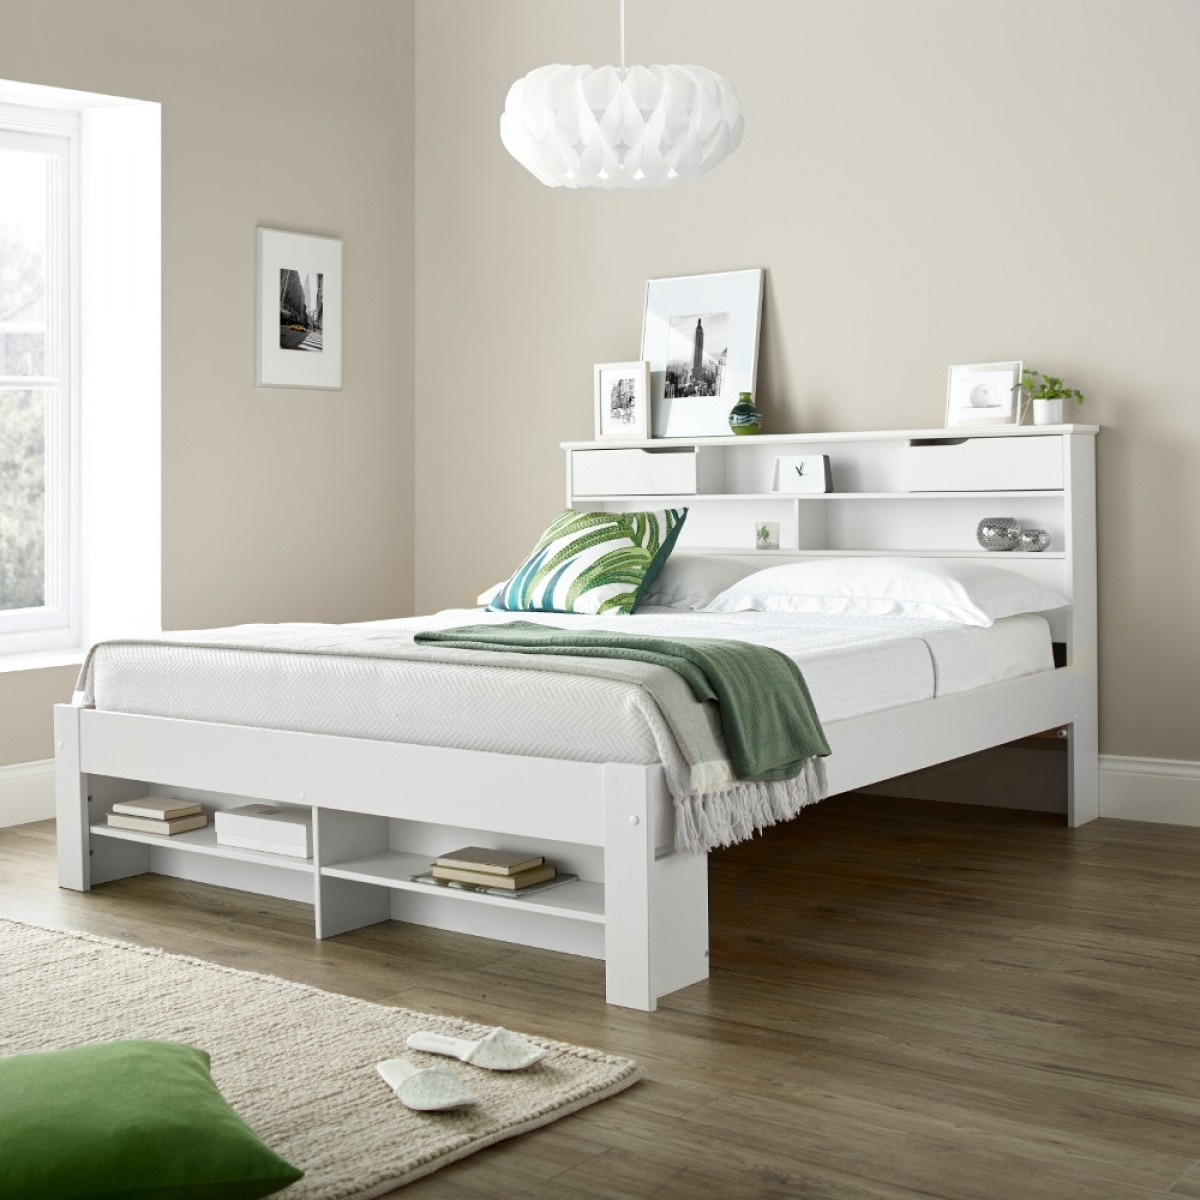 Fabio White Wooden Bookcase Storage Bed